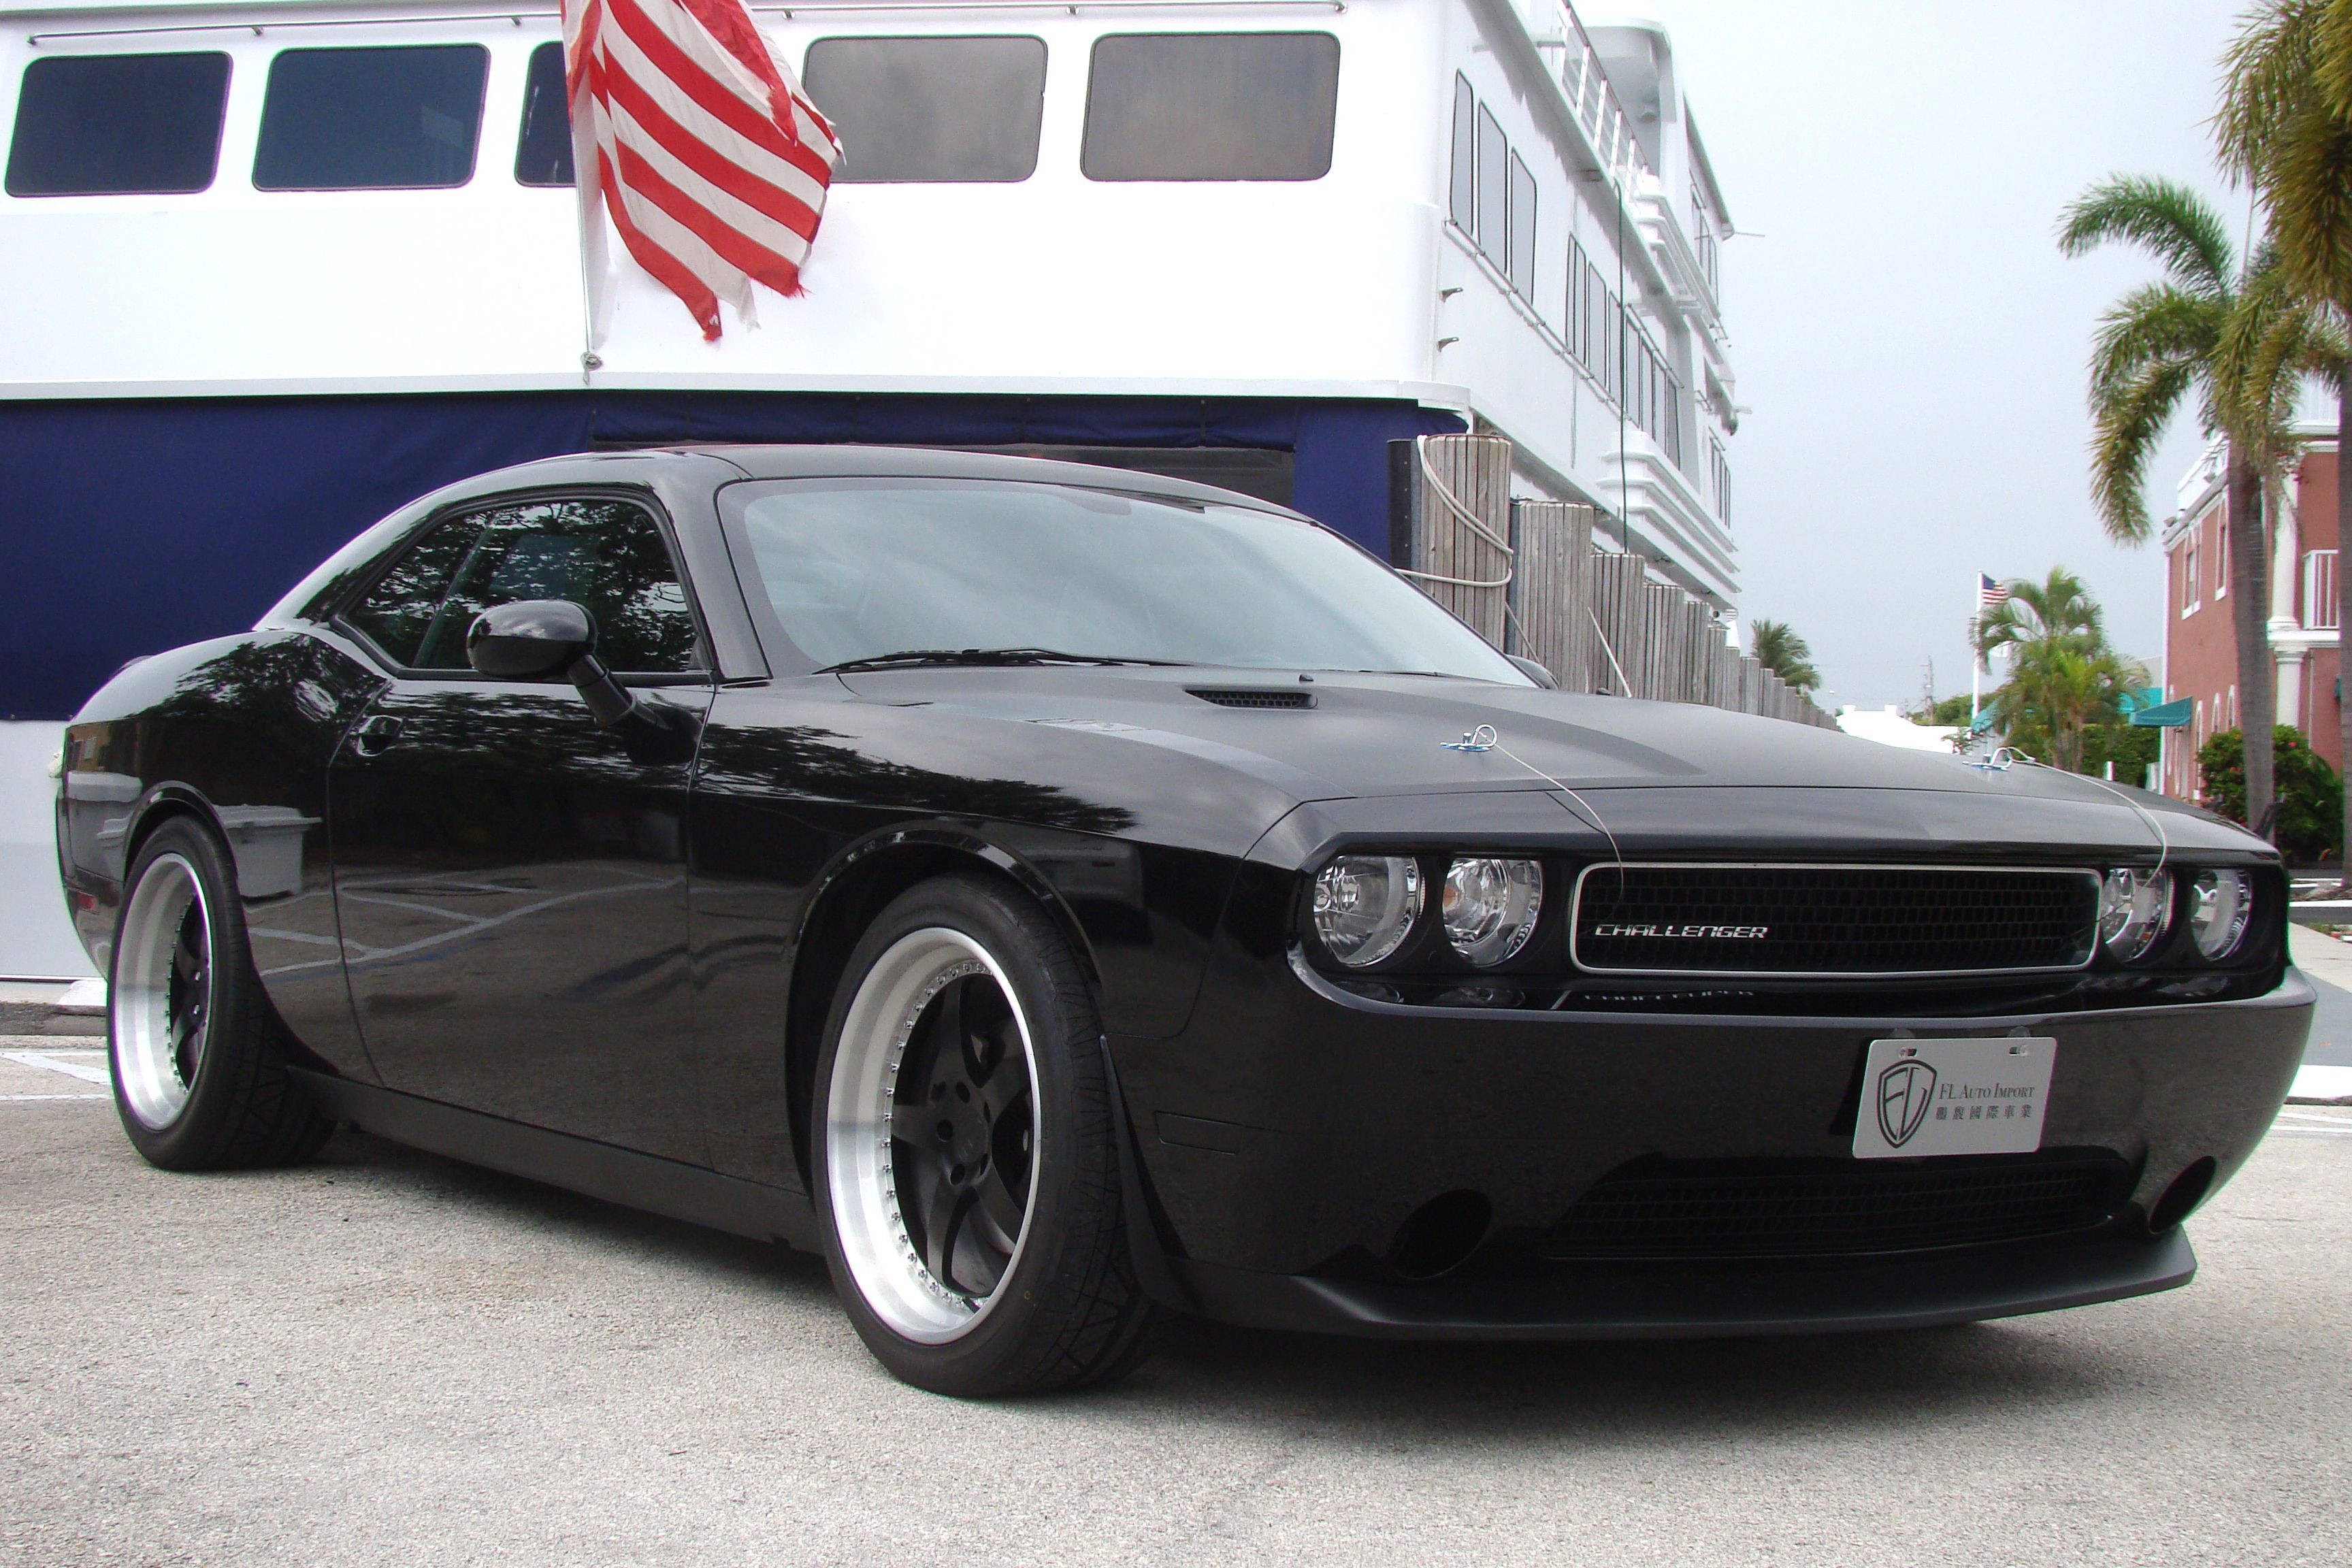 3m scotchprint flat matte black hood roof wrap on dodge challenger in miami florida